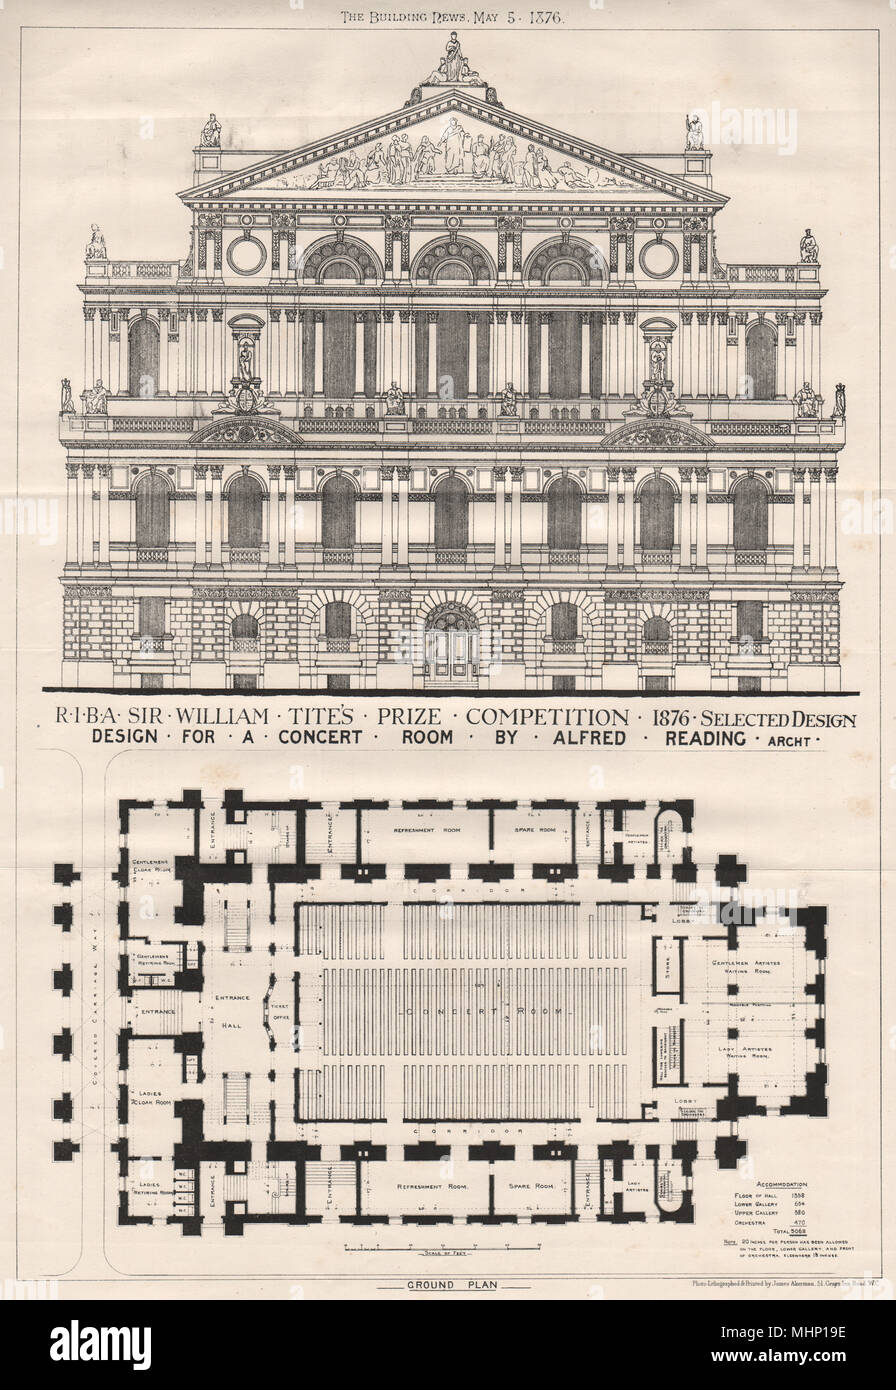 Design for a concert room by Alfred Reading, Architect 1876 old antique print - Stock Image